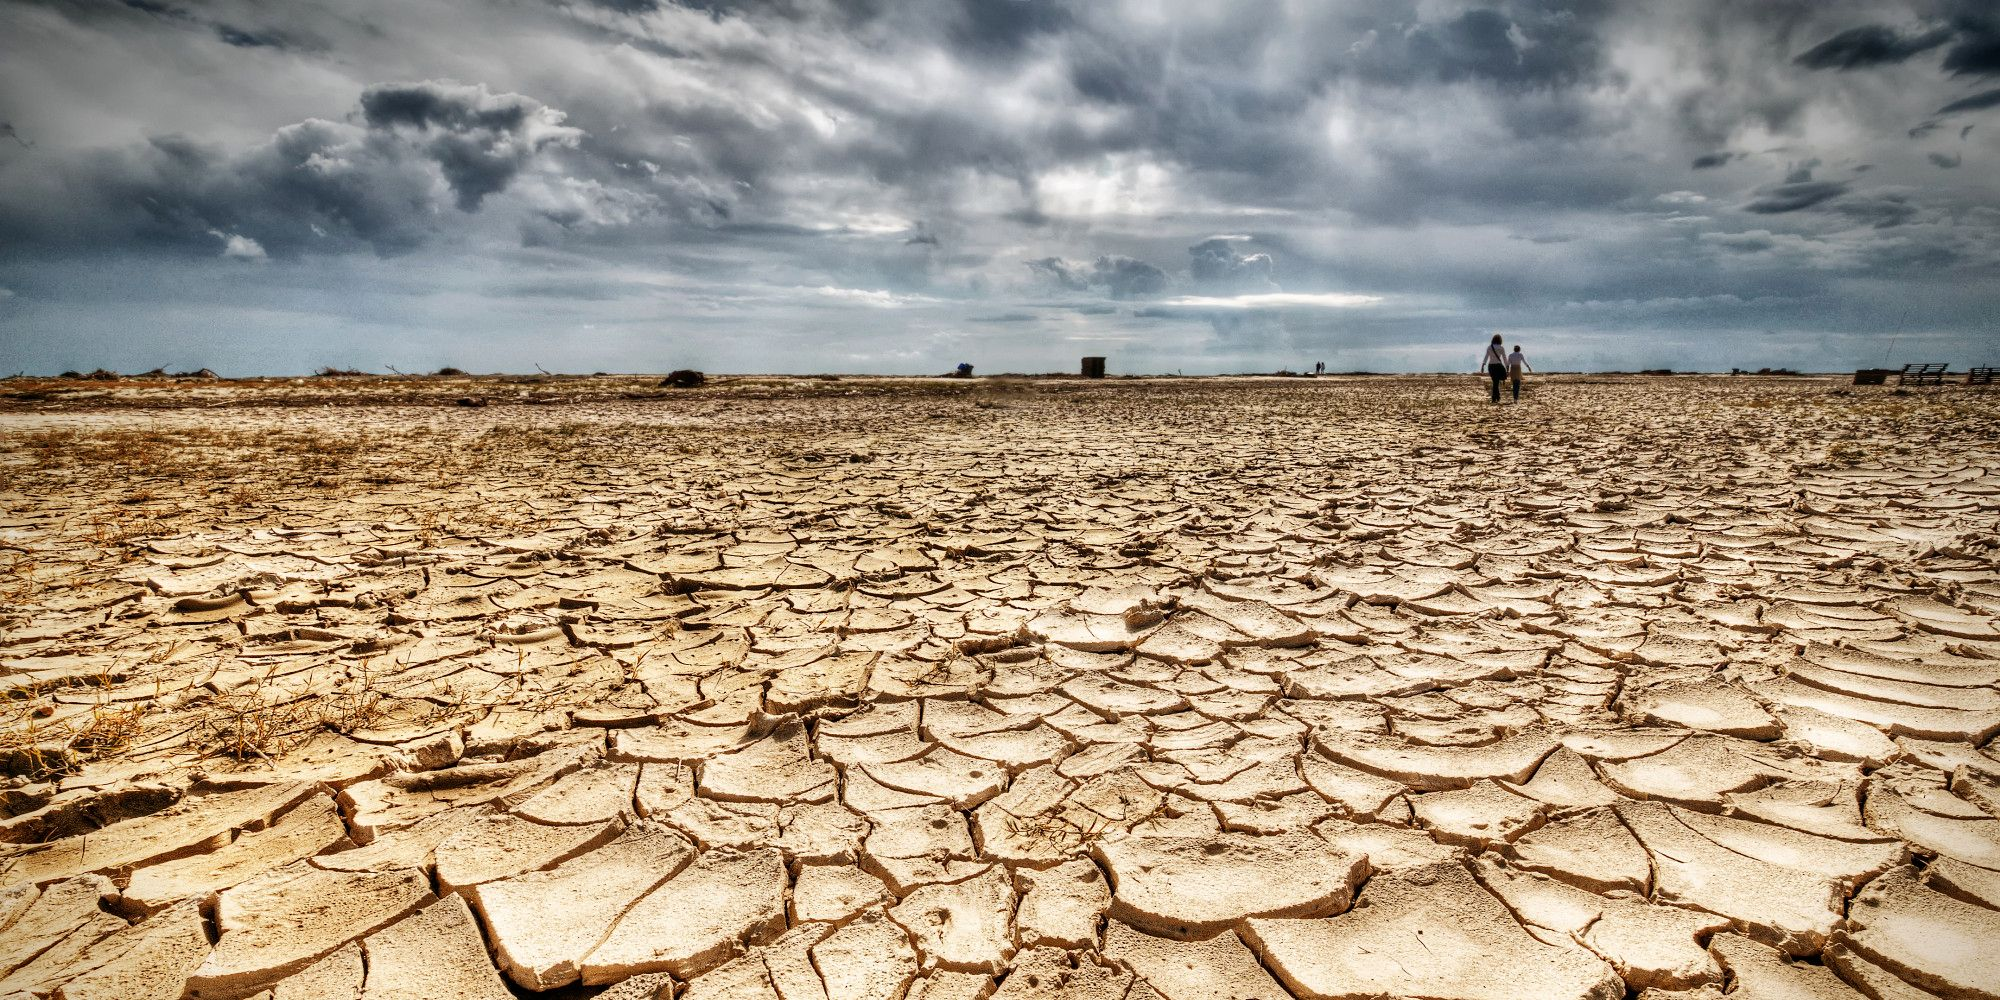 9. Water Scarcity